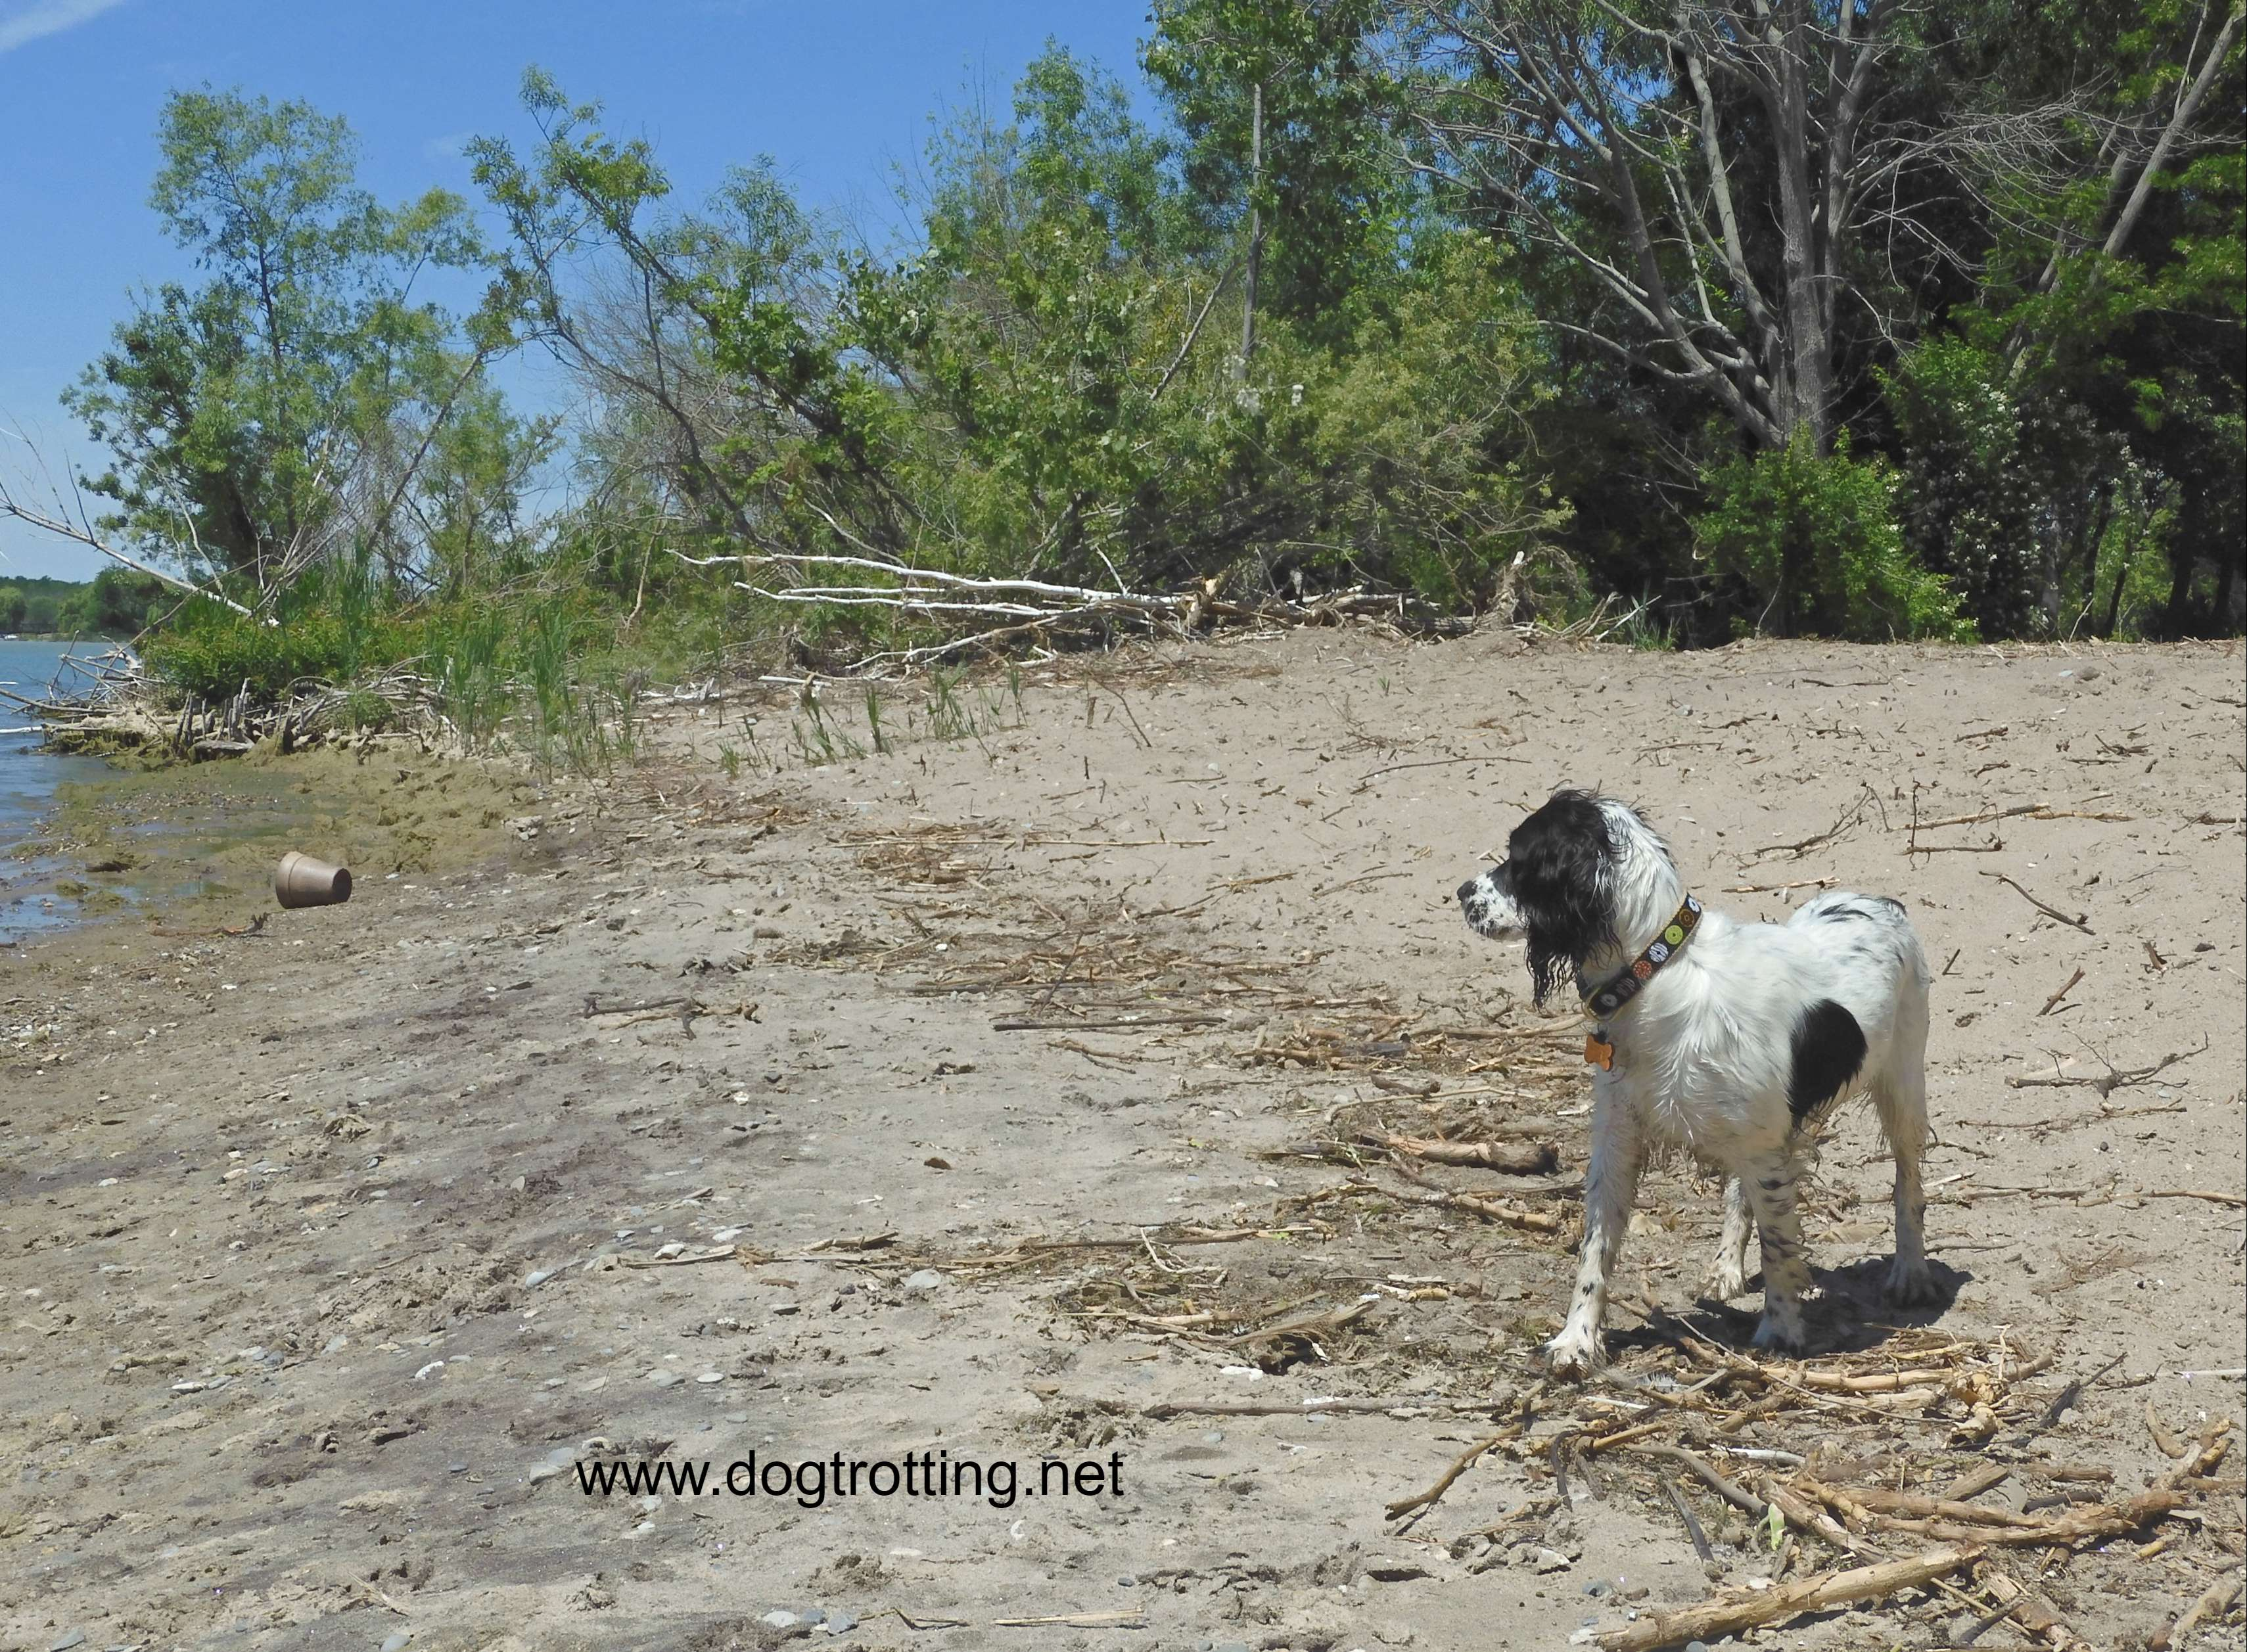 small white and black dog running on dog beach at Selkirk Provincial Park, Ontario, Canada